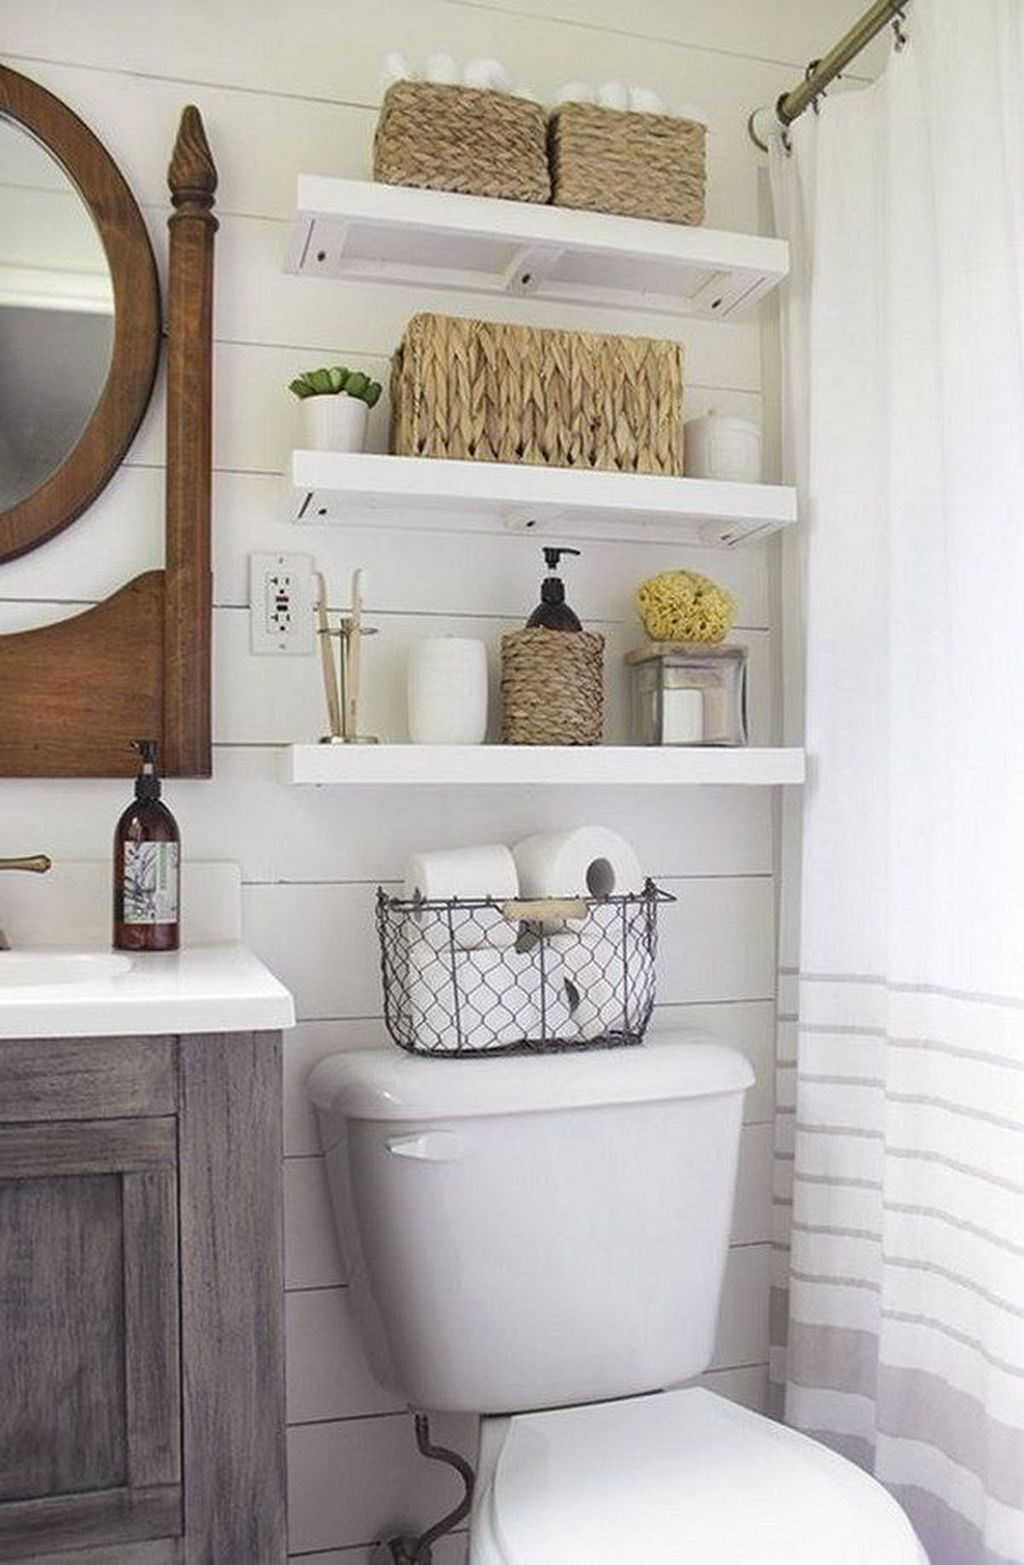 Amazing Bathroom Storage Design Ideas For Small Space 08